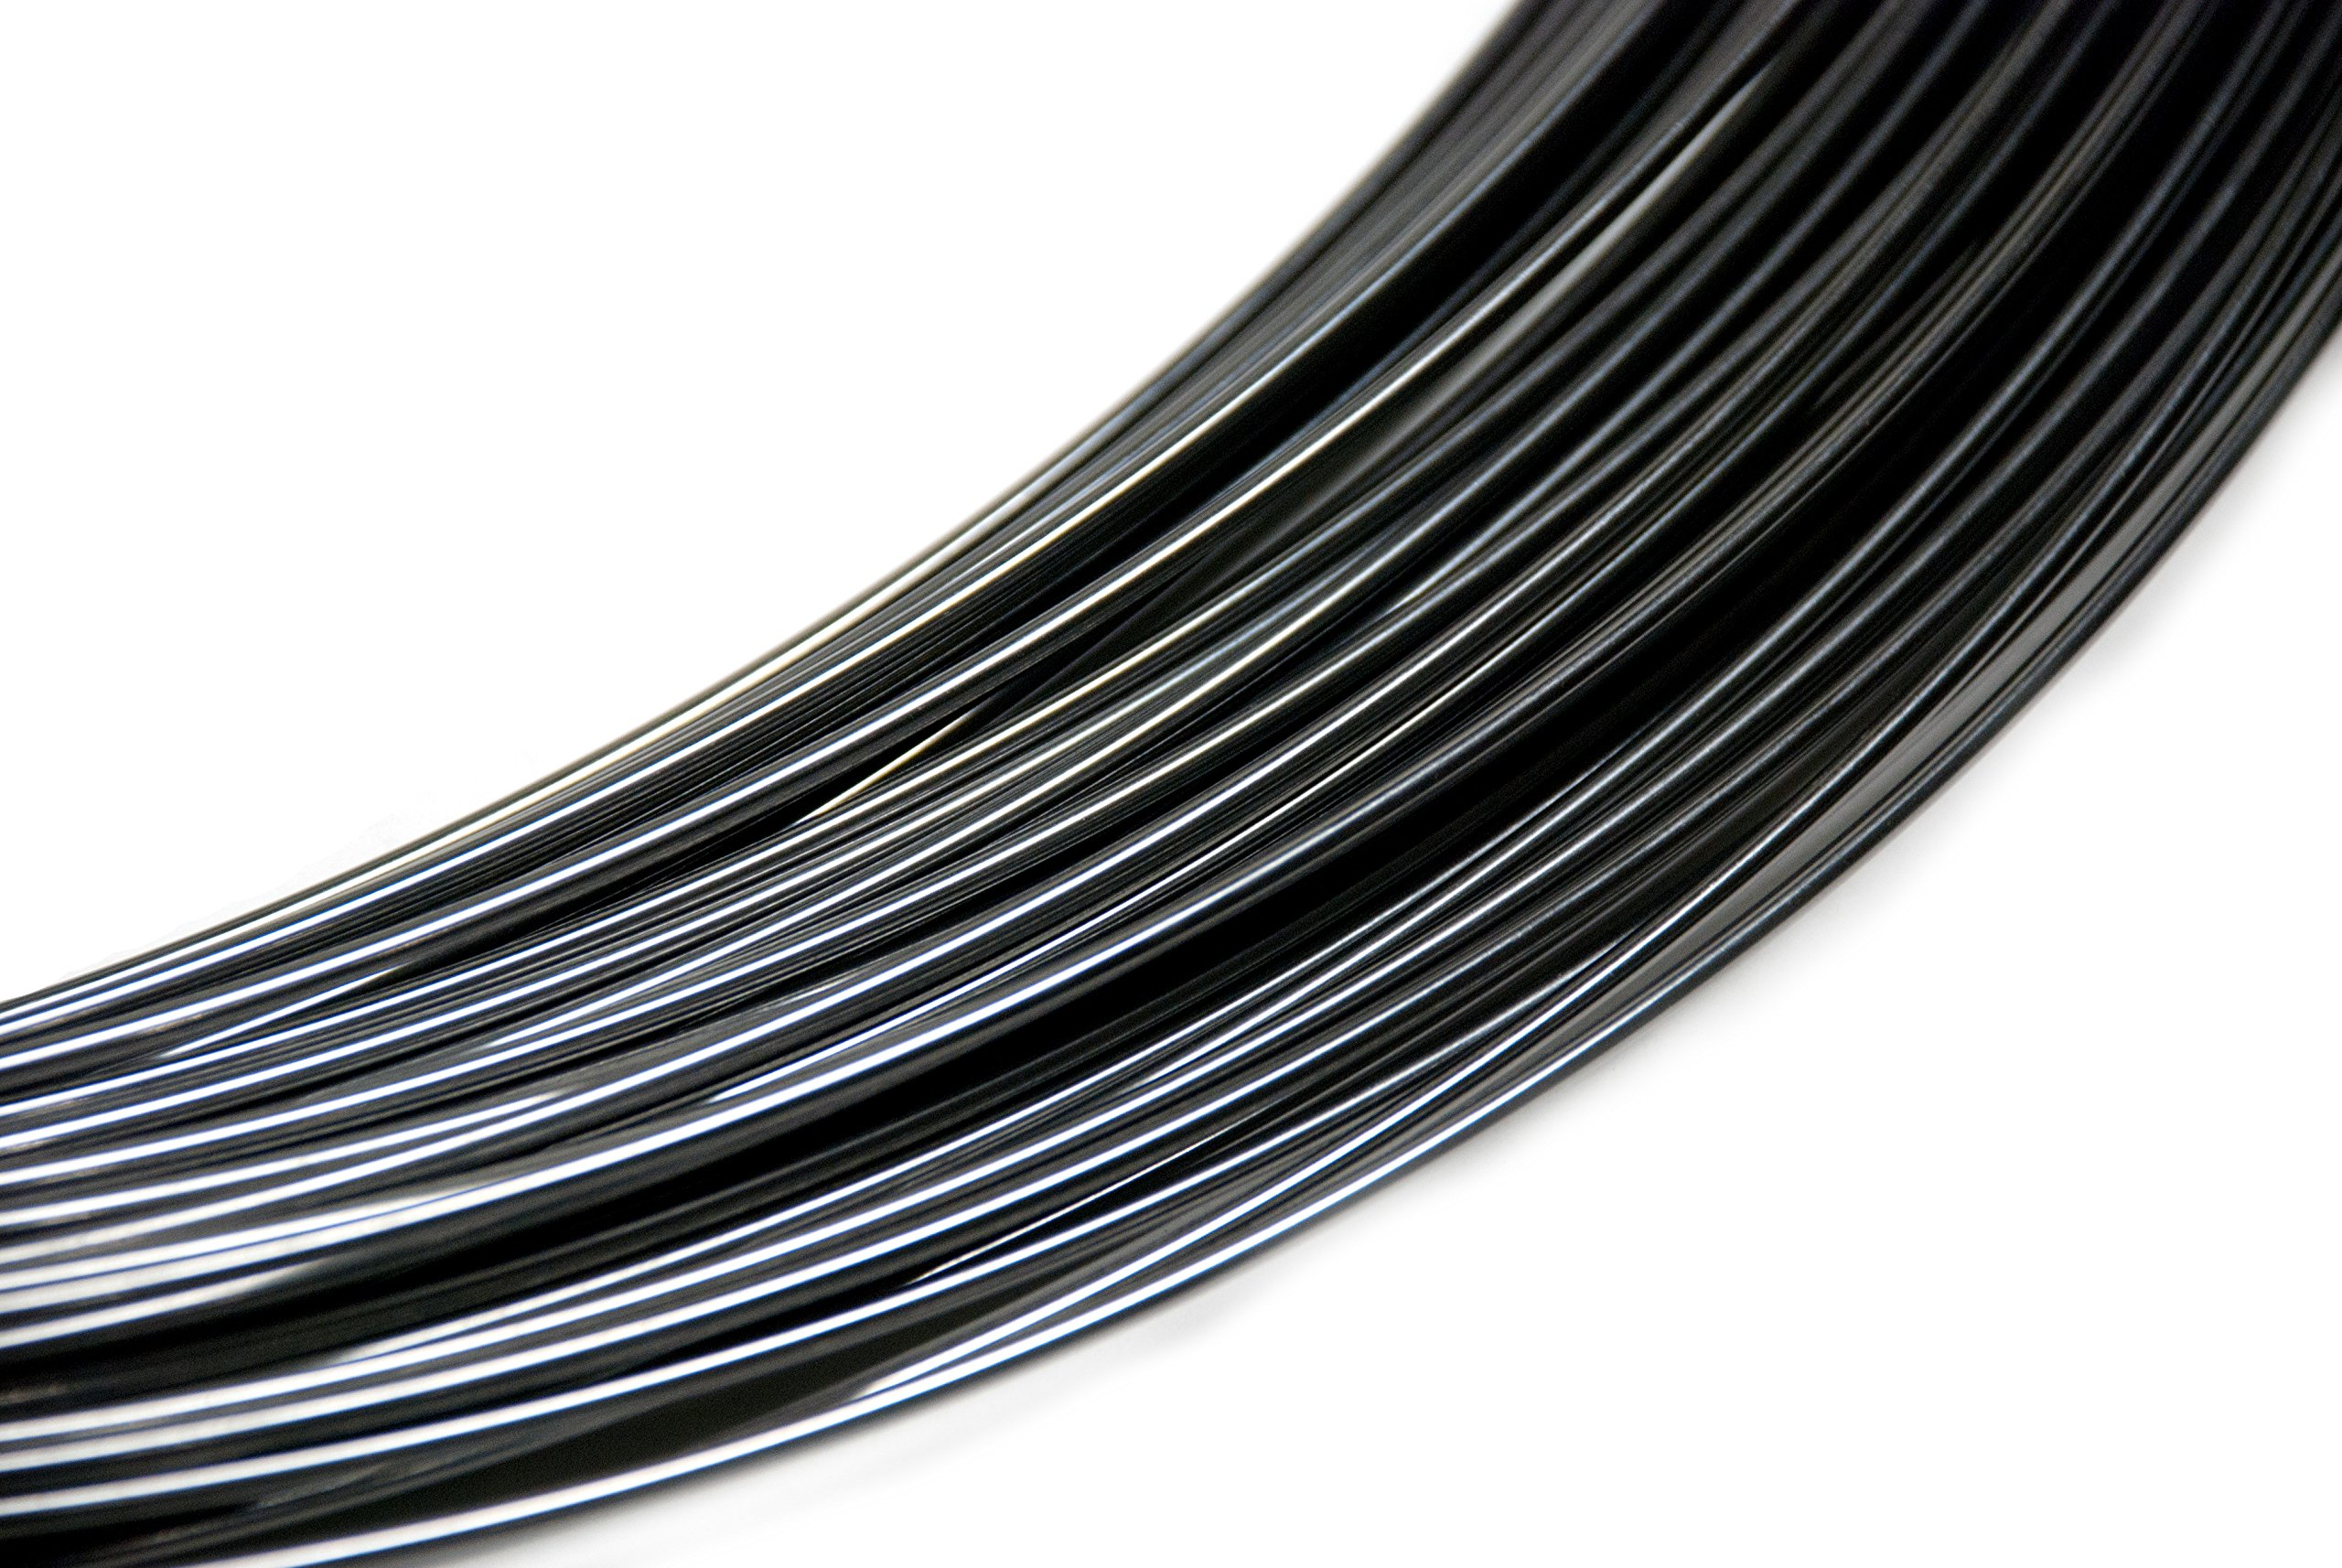 80/°C 0.02 SMA 176/°F 0.5mm Nitinol Shape Memory Alloy , 10 pre-Trained Magic Muscle Wire